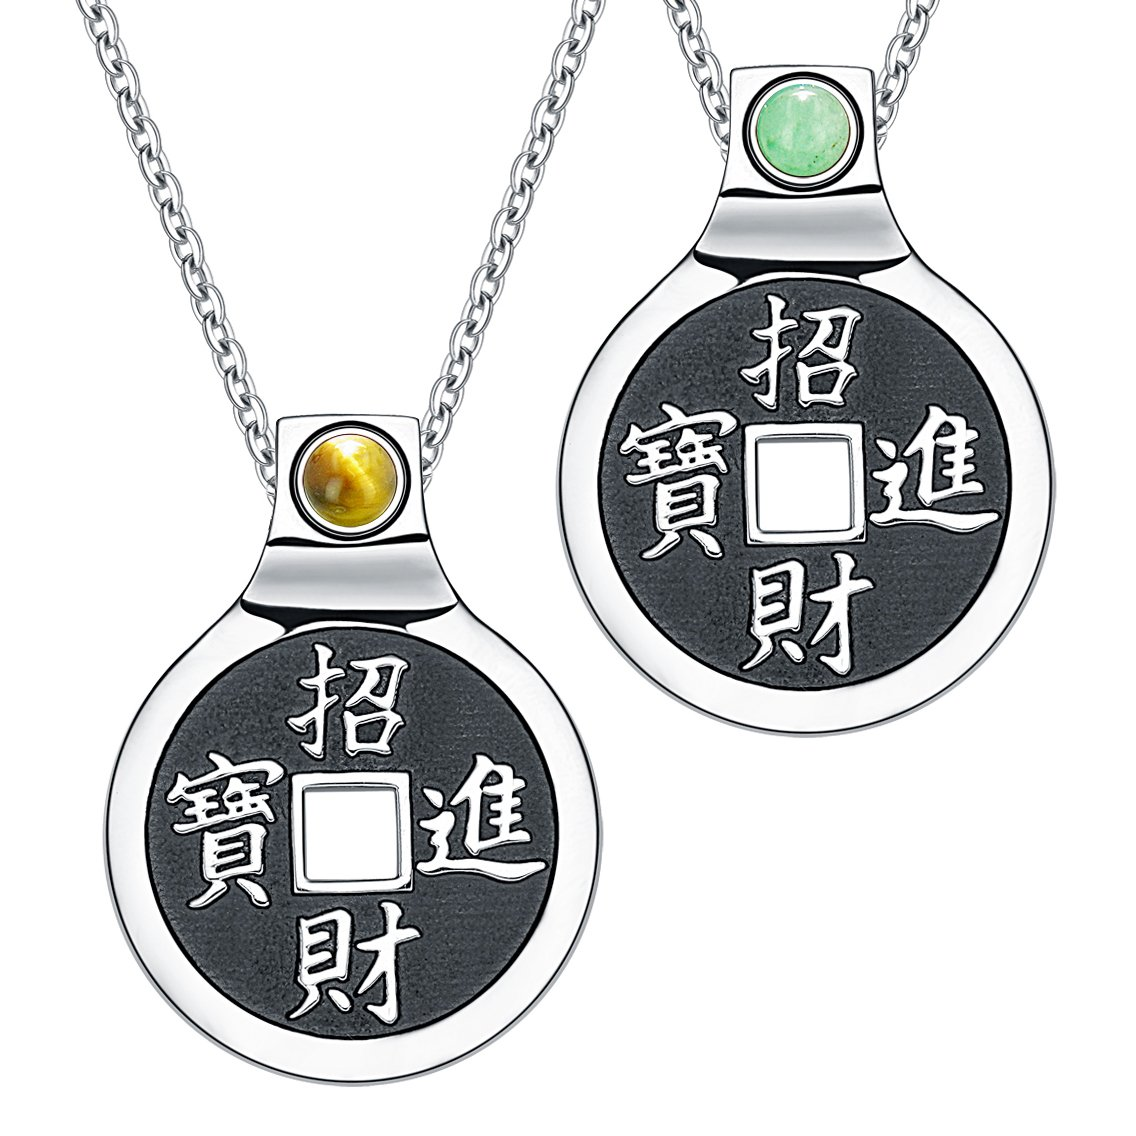 Yin Yang Amulets Love Couple Feng Shui Lucky Coins Kanji Magic Set Tiger Eye Green Quartz Necklaces